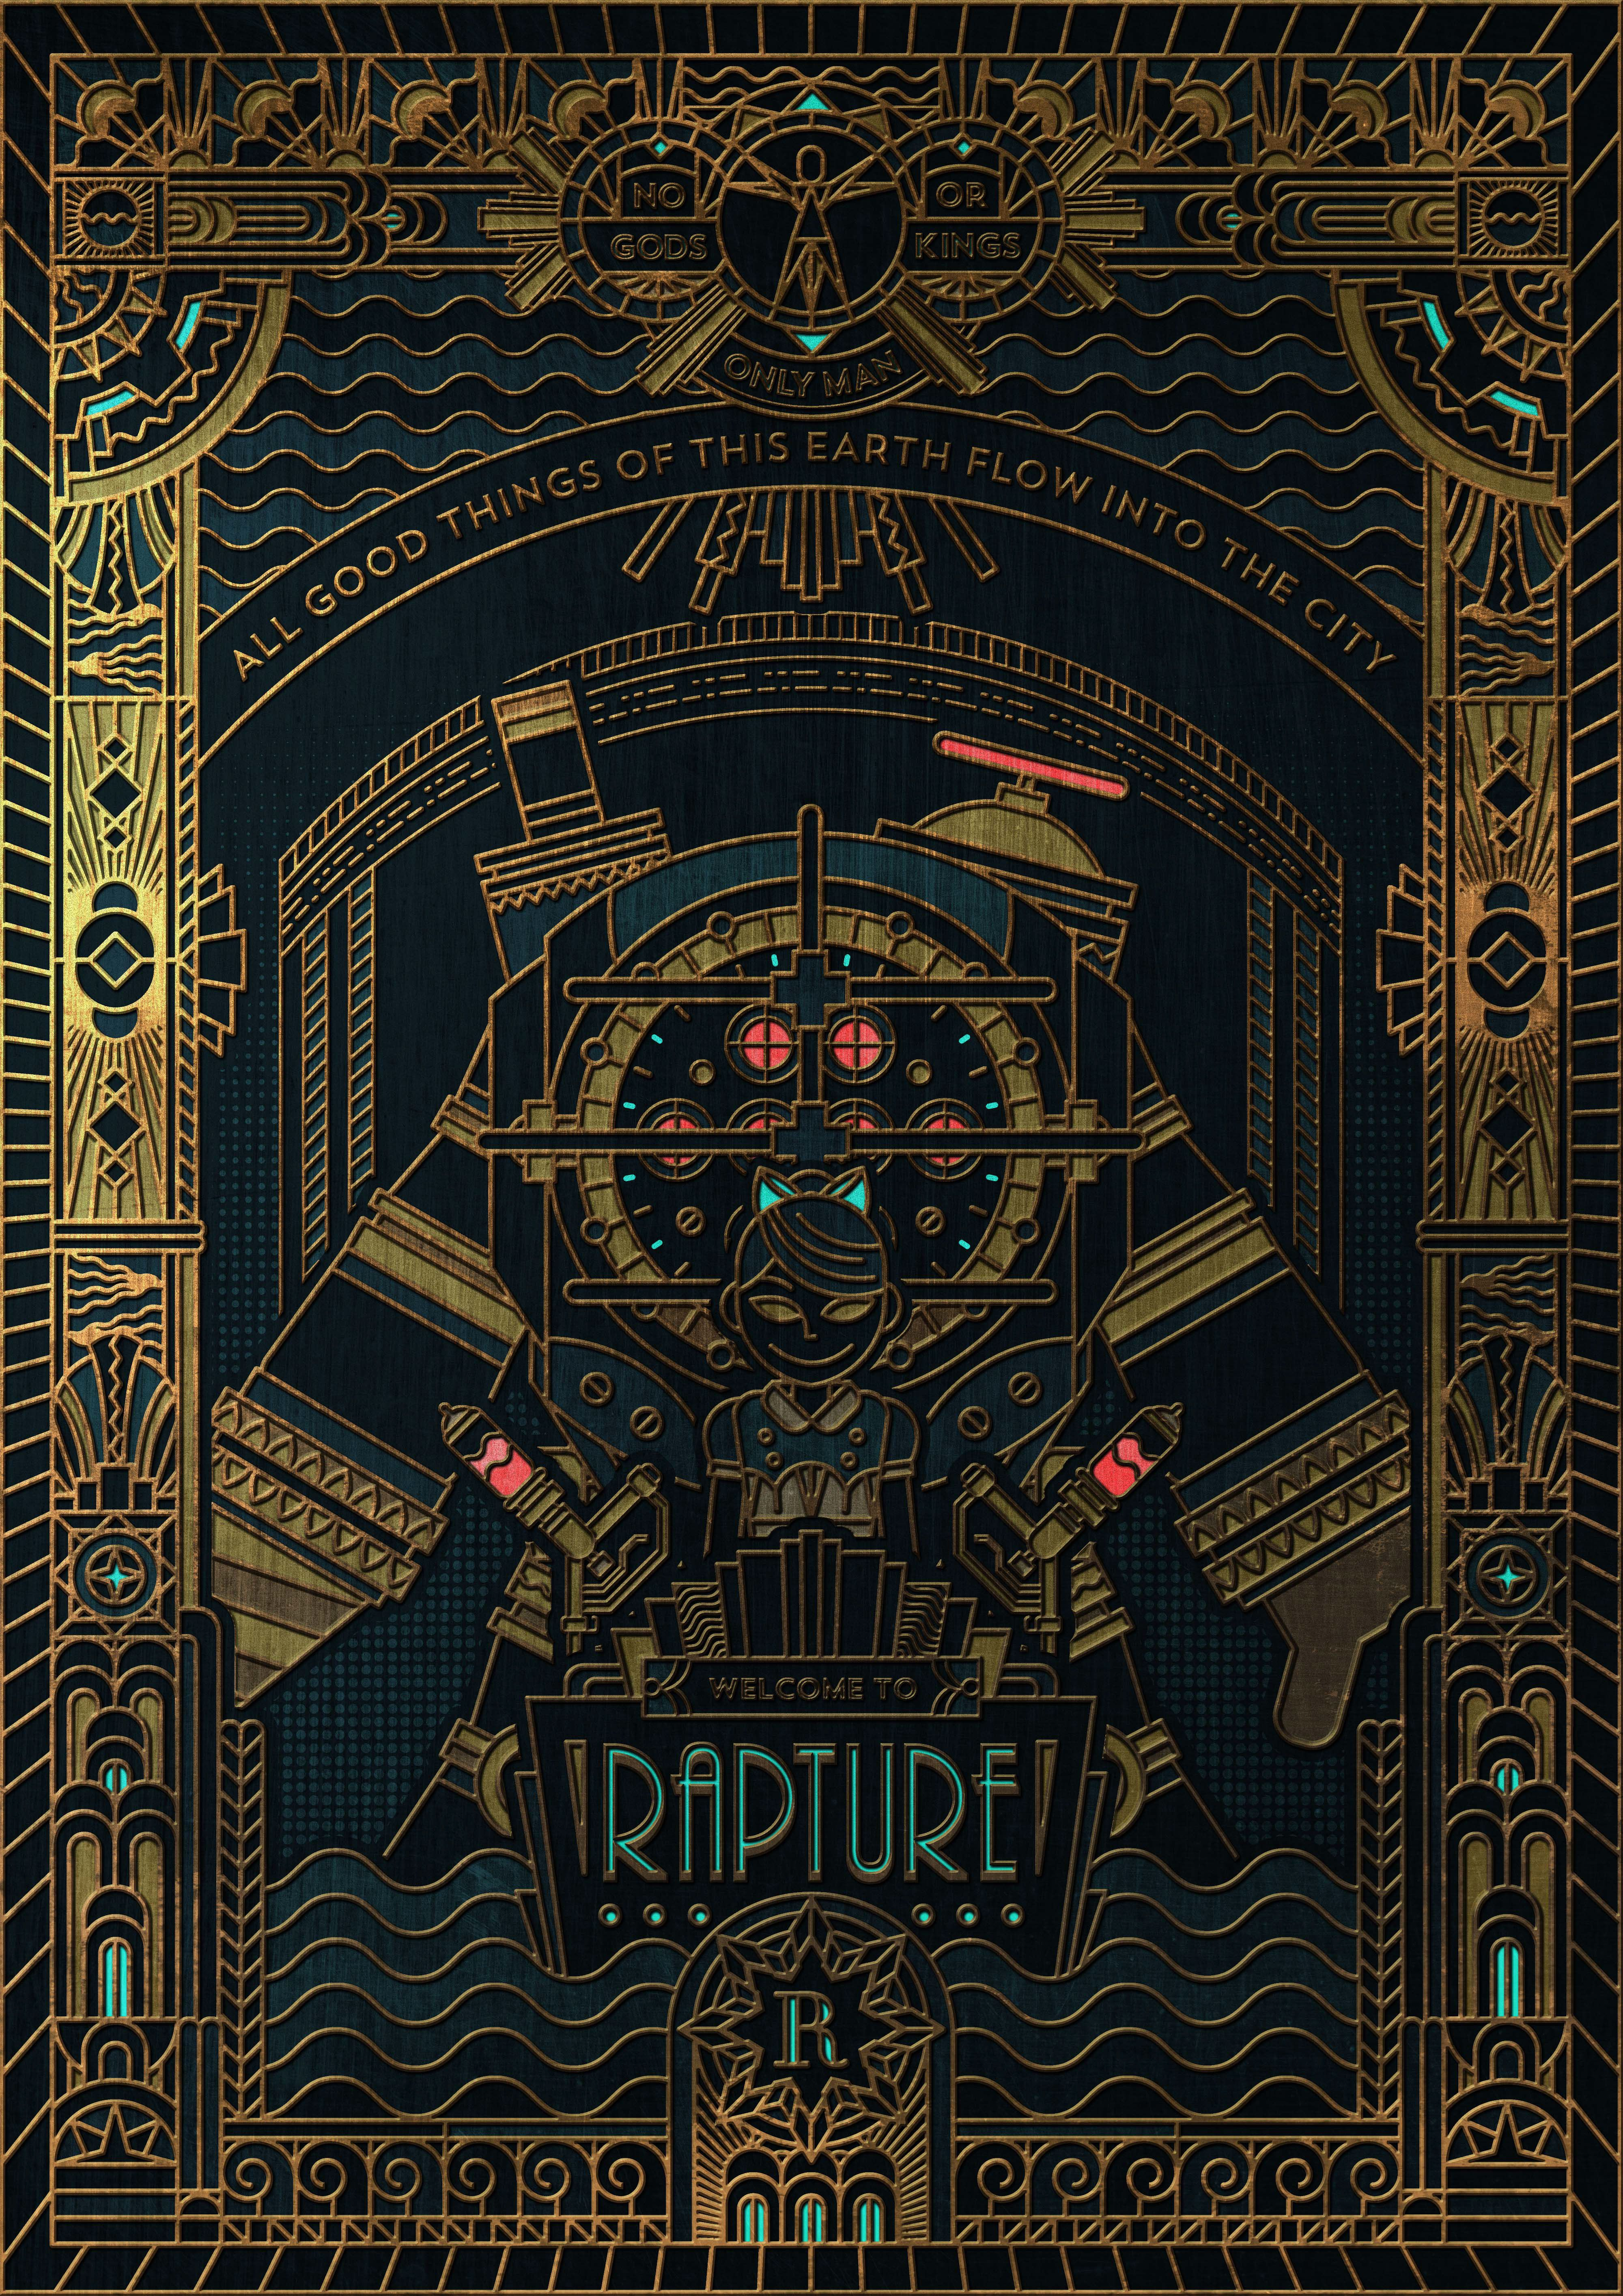 Check Out This Behance Project Bioshock Rapture Https Www Behance Net Gallery 31573627 Bioshock Rapture Bioshock Art Bioshock Rapture Bioshock